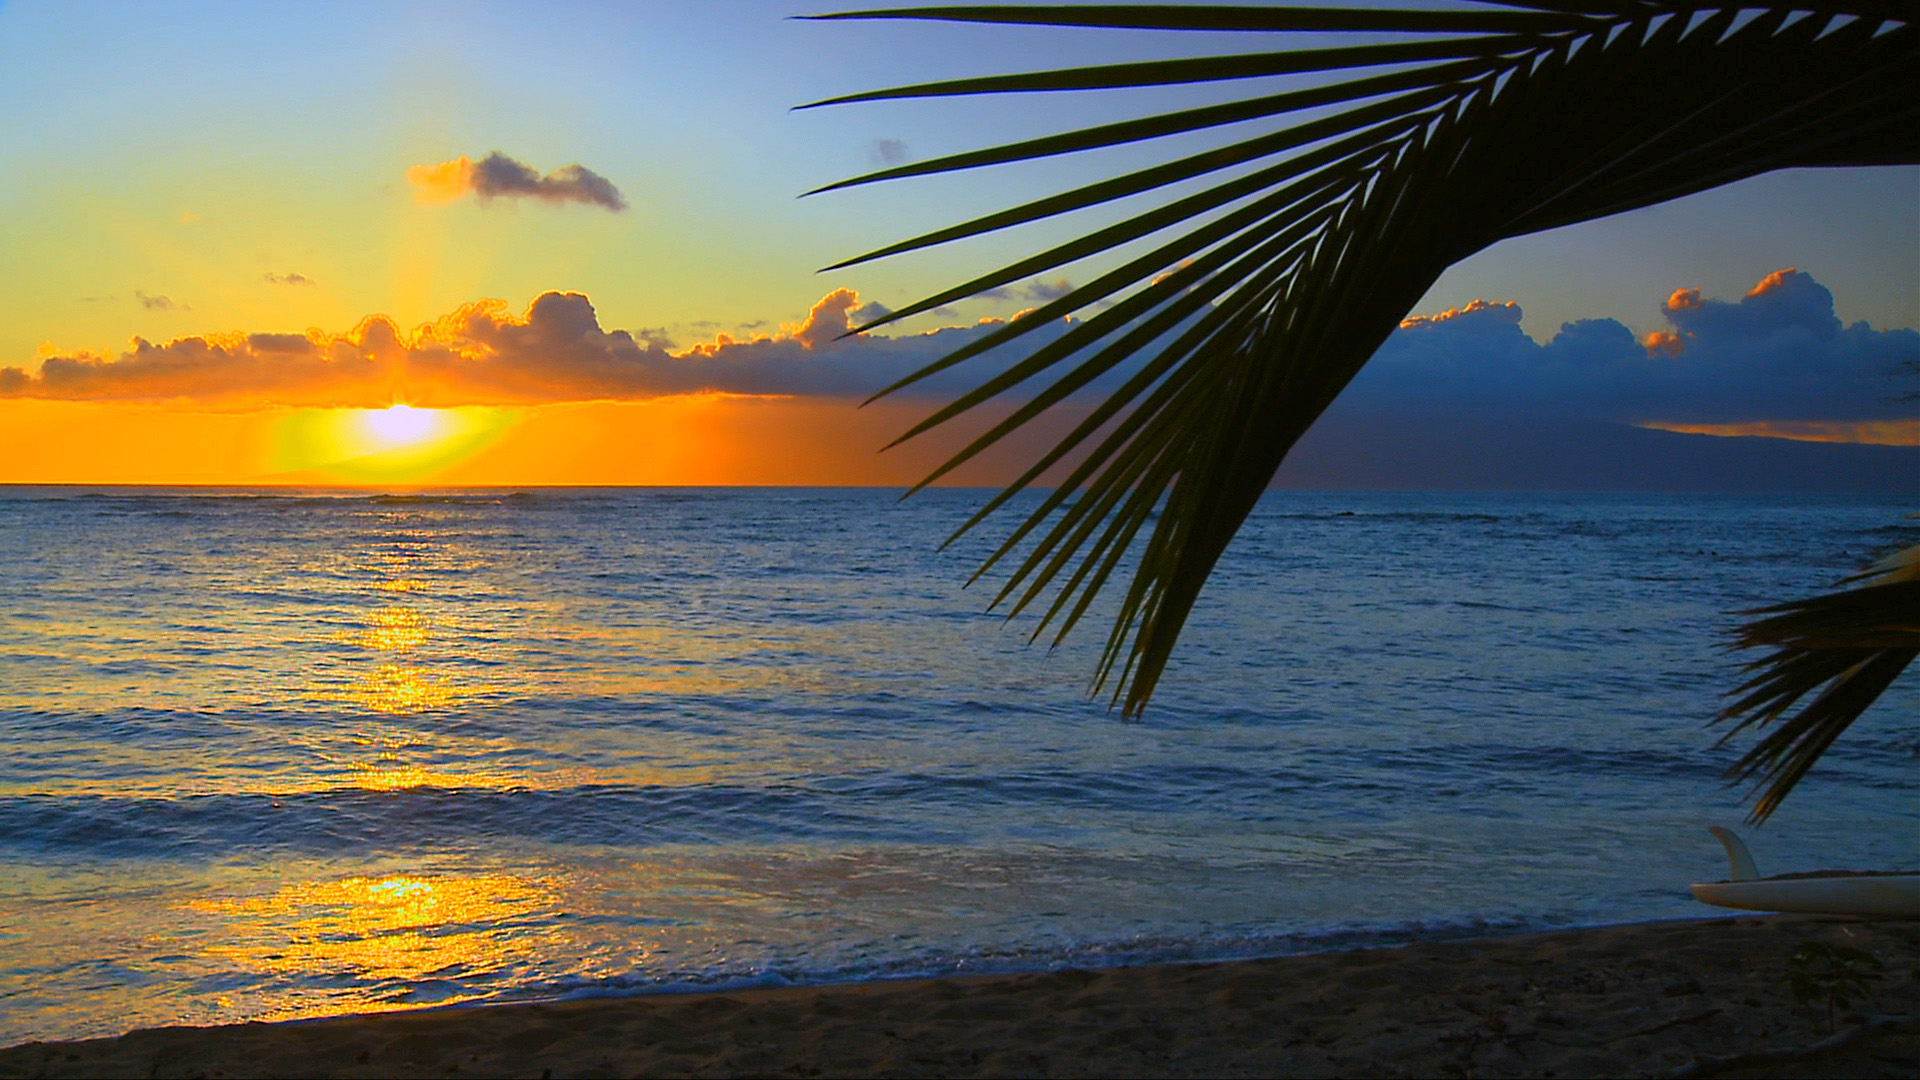 hawaii beaches background screensaver webshots media beautiful 1920x1080